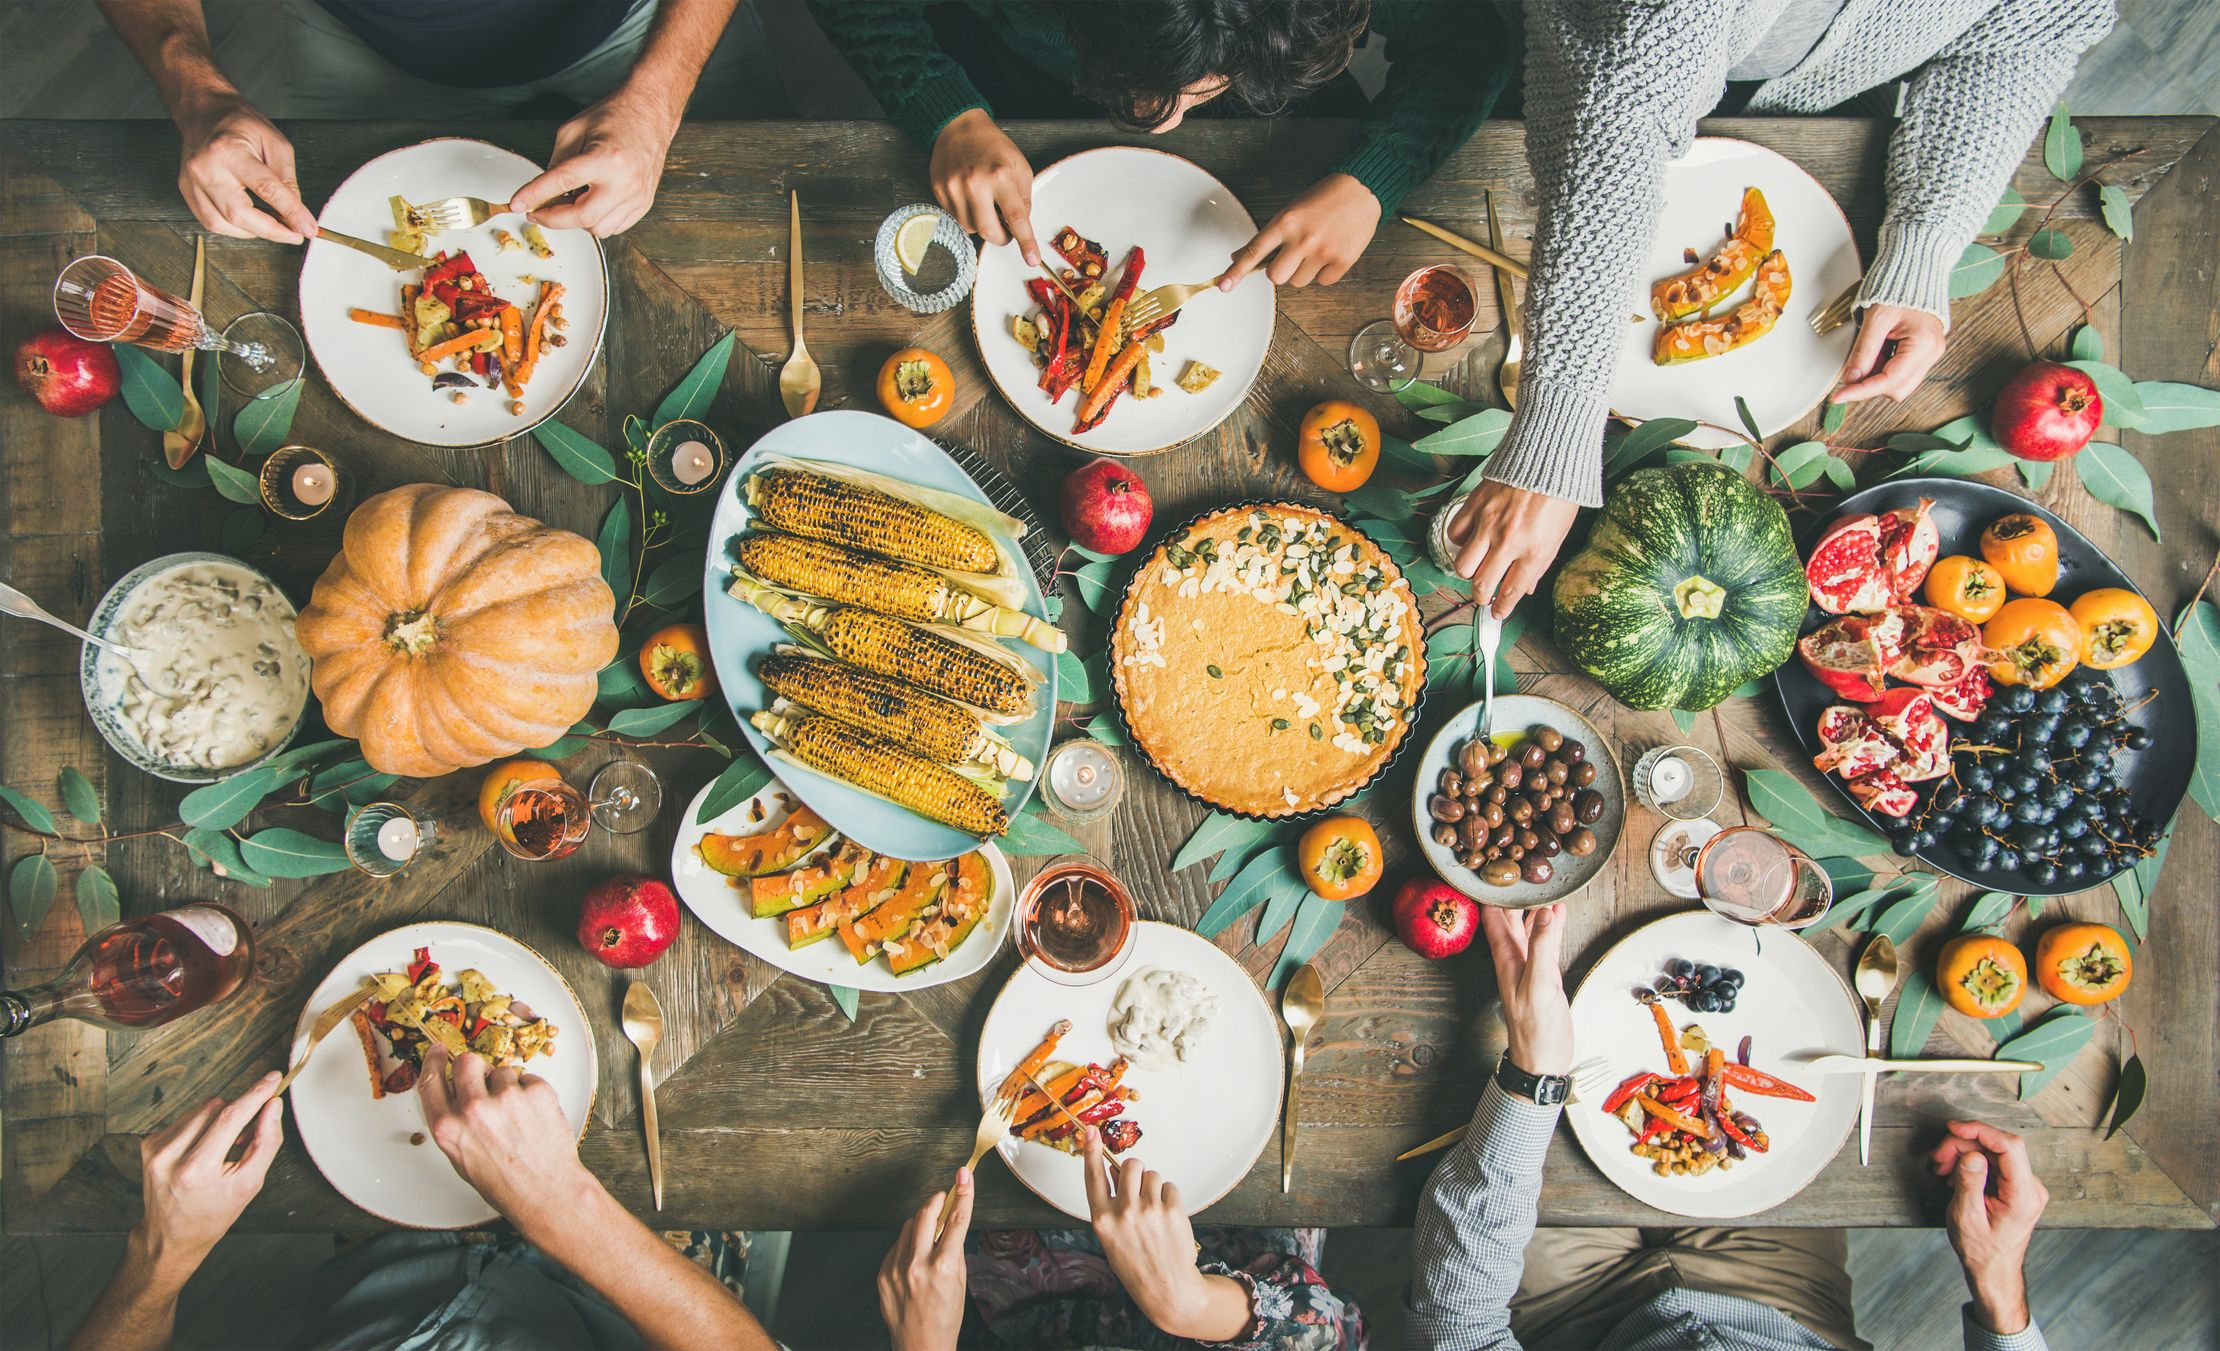 10 Friendsgiving Ideas To Plan The Ultimate Potluck With Friends